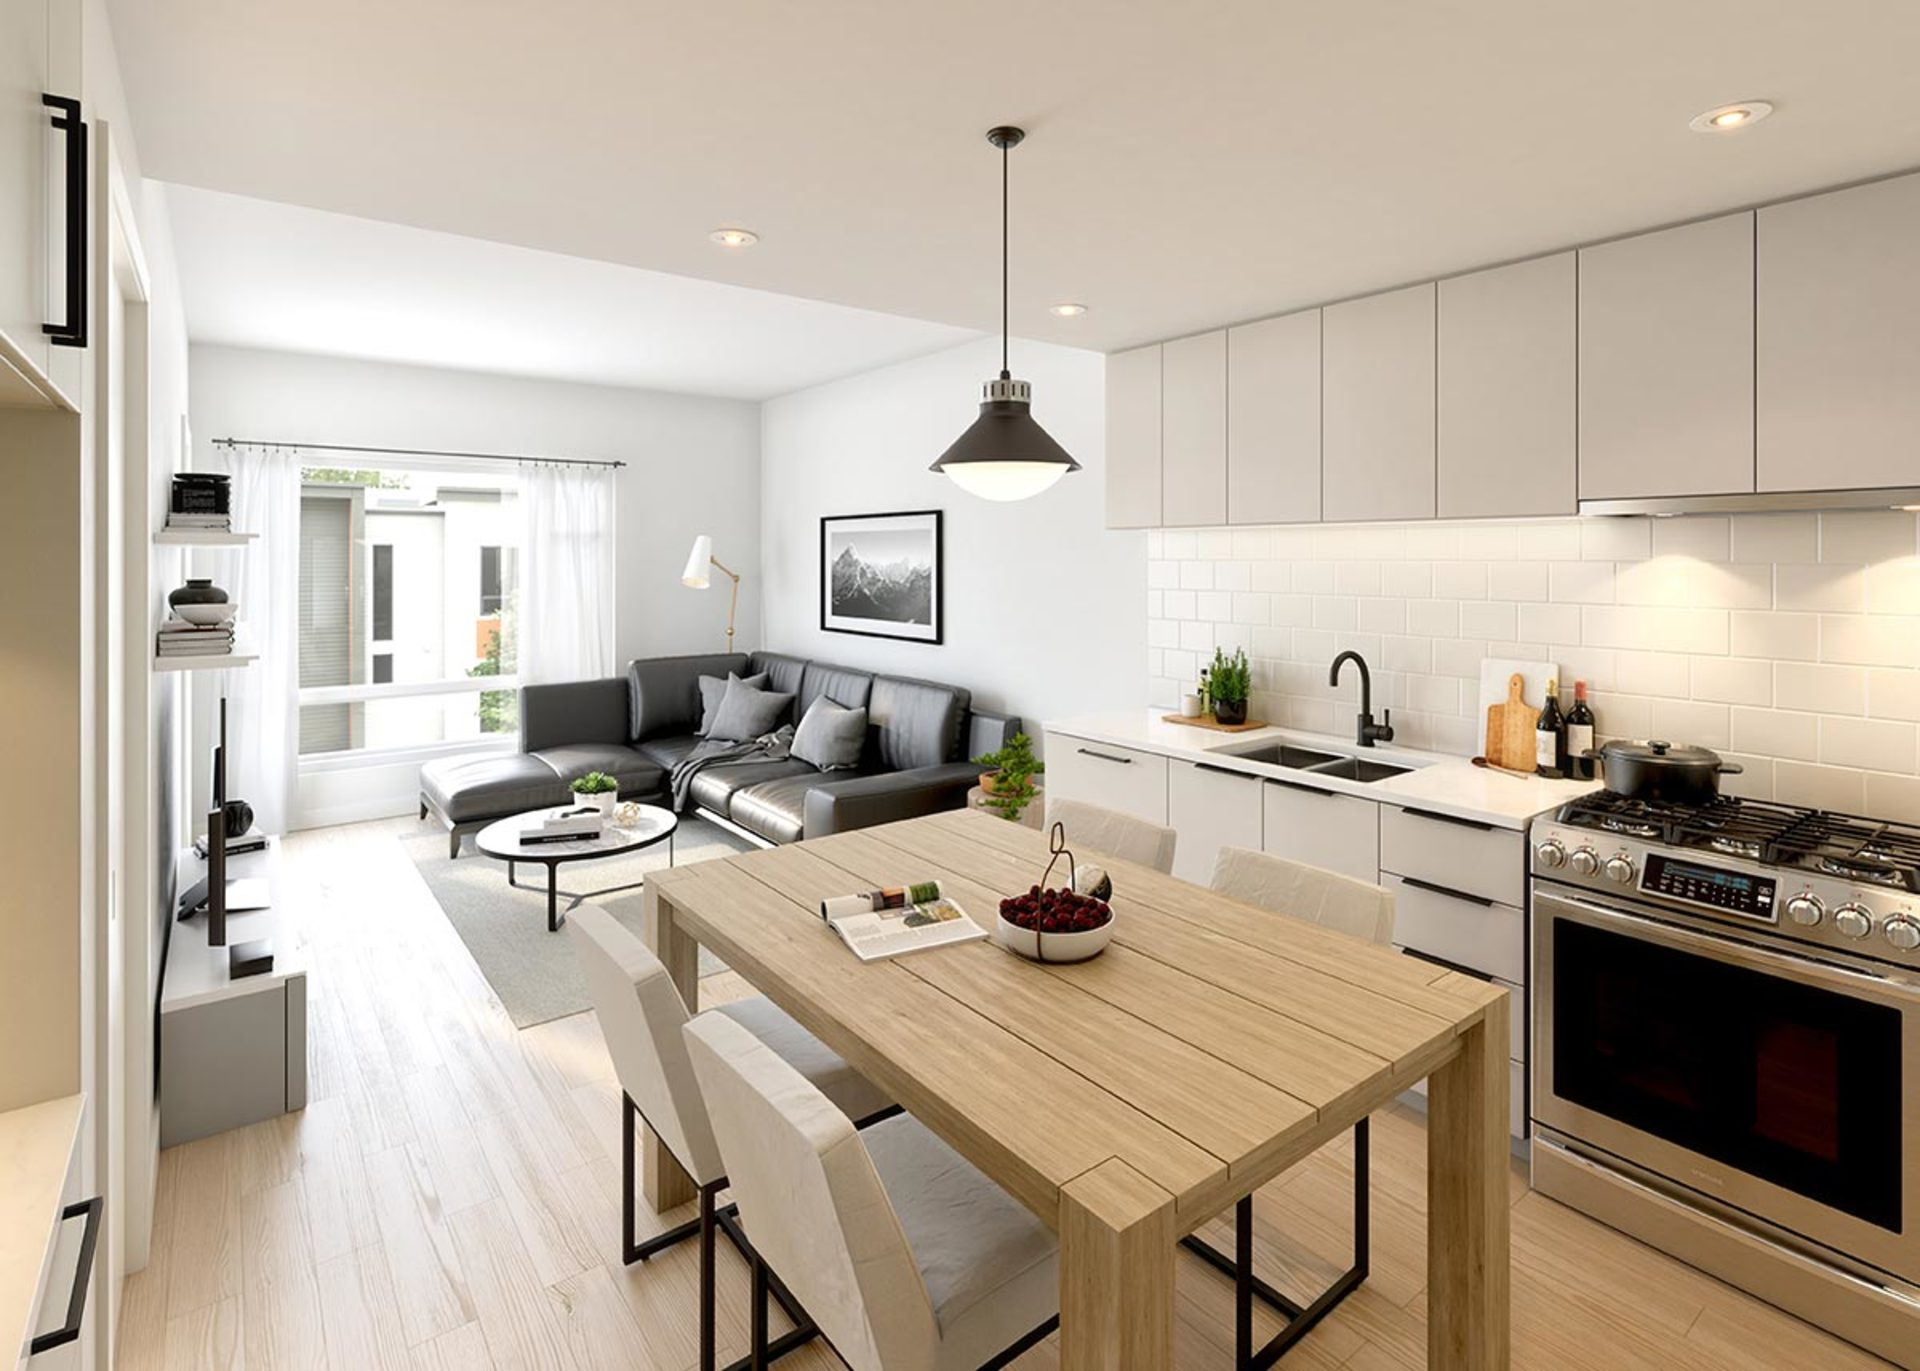 george-condos-kitchen-clour-scheme-1 at George (3010 St. George Street, Port Moody Centre, Port Moody)